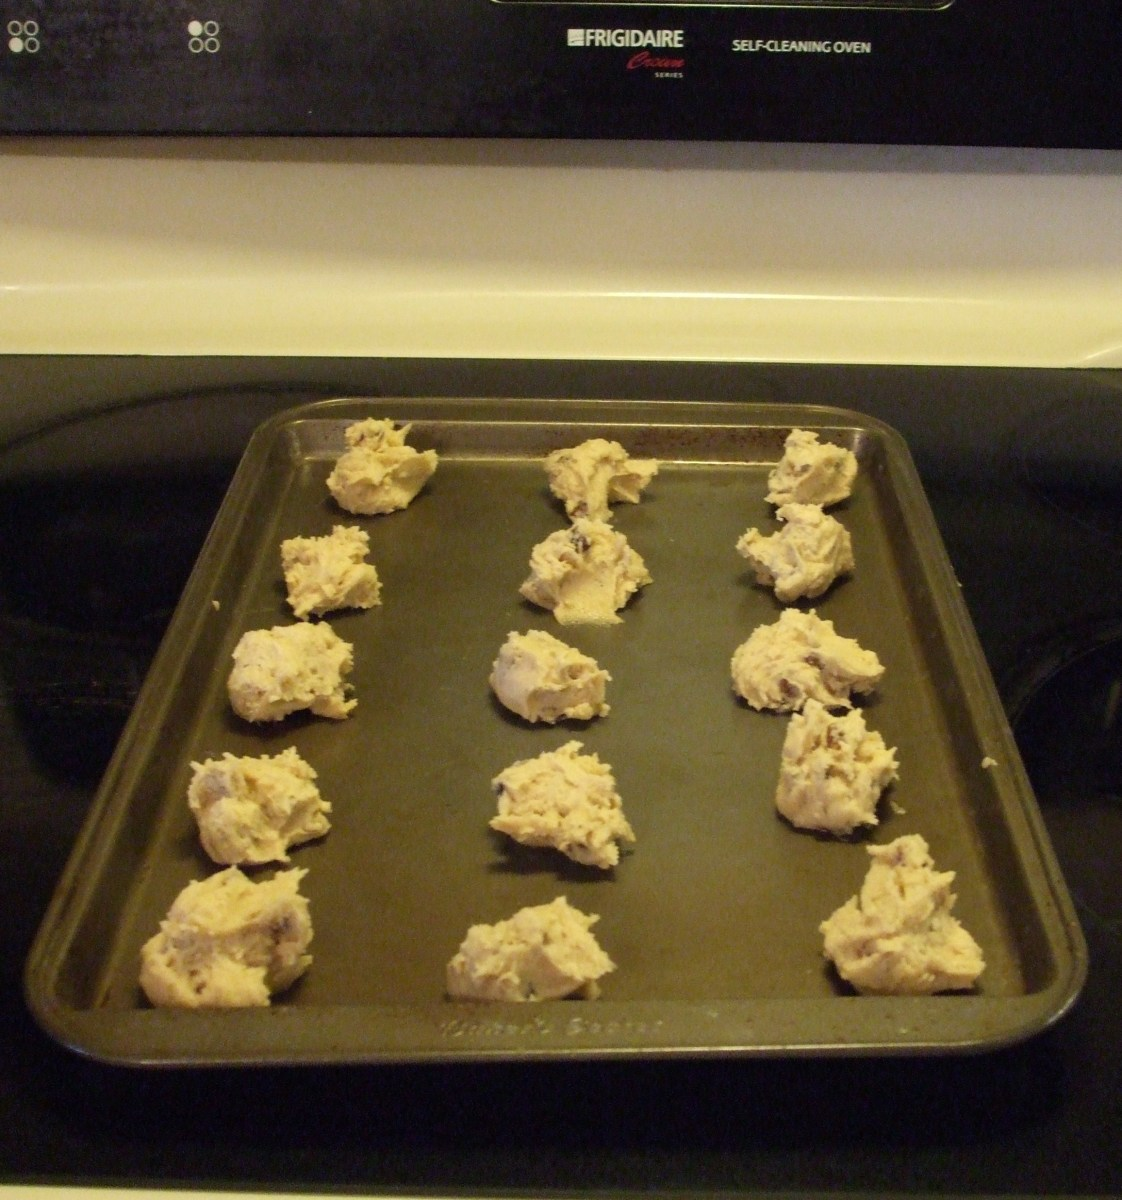 Size and spacing of the cookies before they go into the oven.